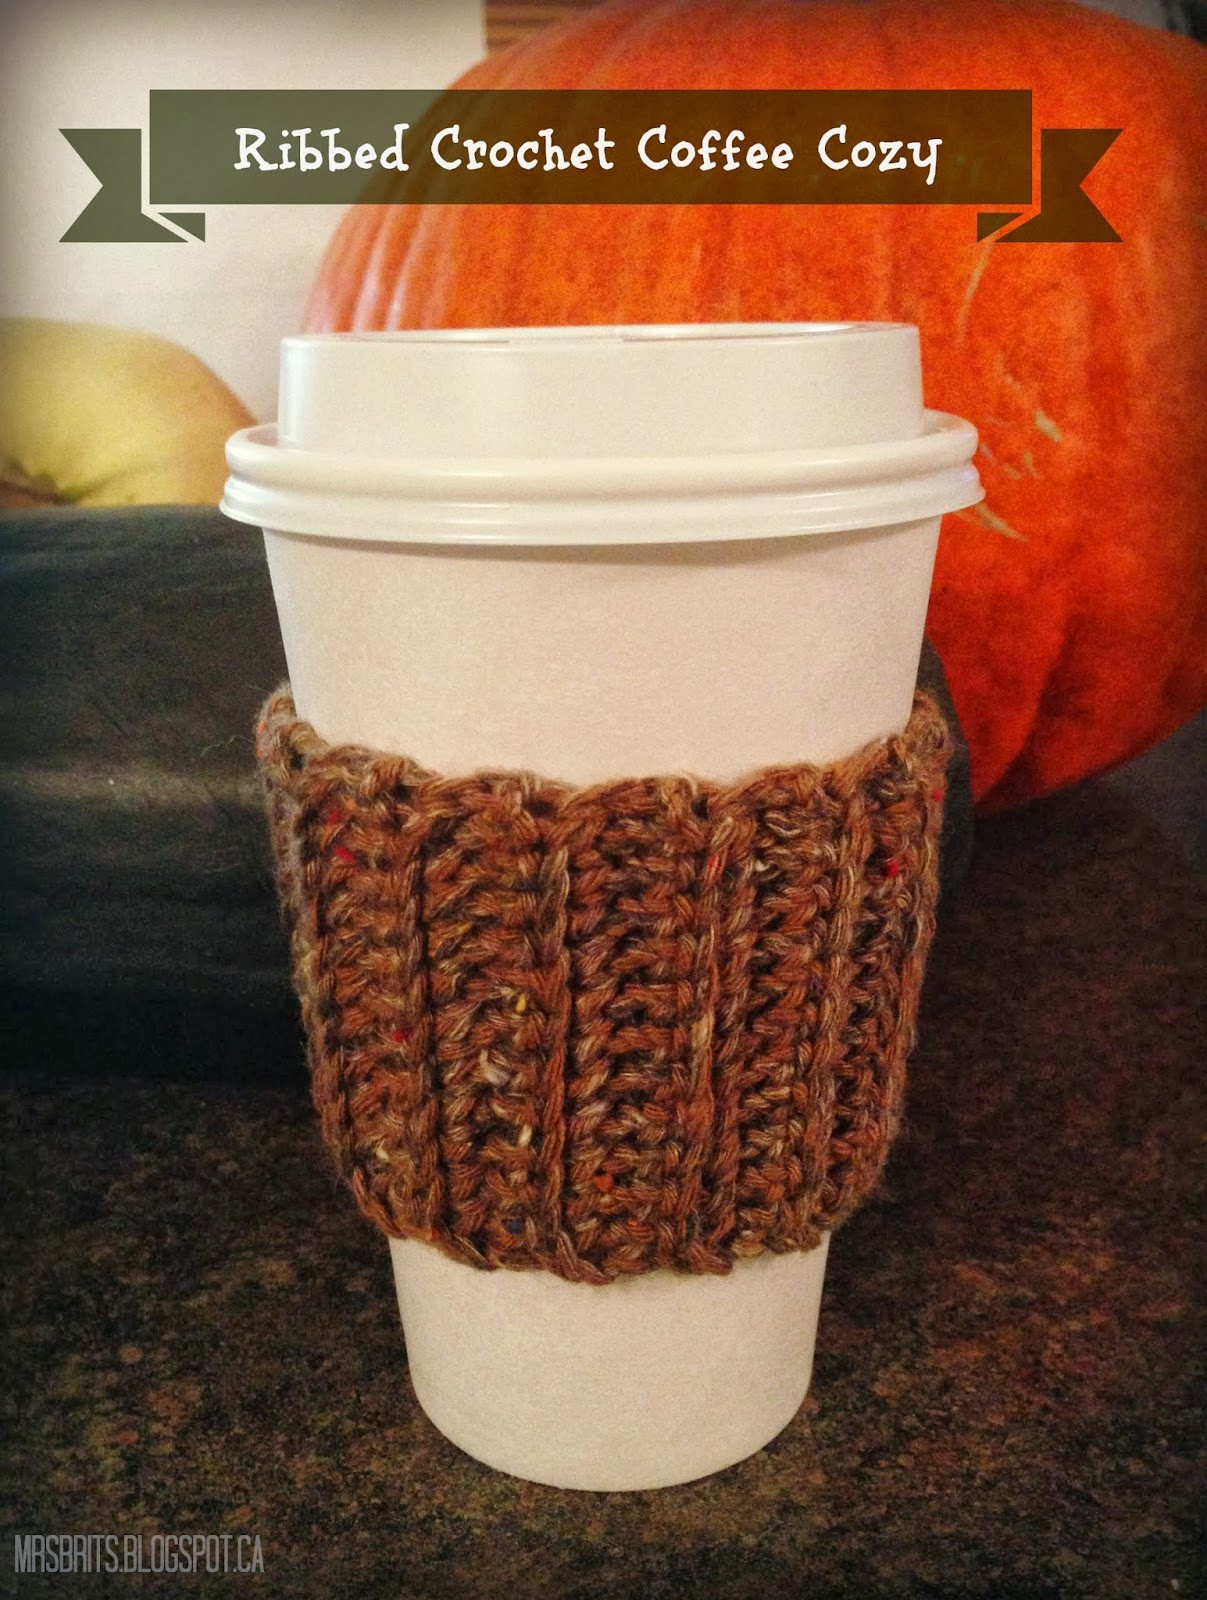 Crochet Coffee Cup Cozy Unique Mrsbrits Ribbed Coffee Cozy Crochet Pattern Of Crochet Coffee Cup Cozy Awesome Crochet and Other Stuff Crochet A Mug Cozy Free Pattern